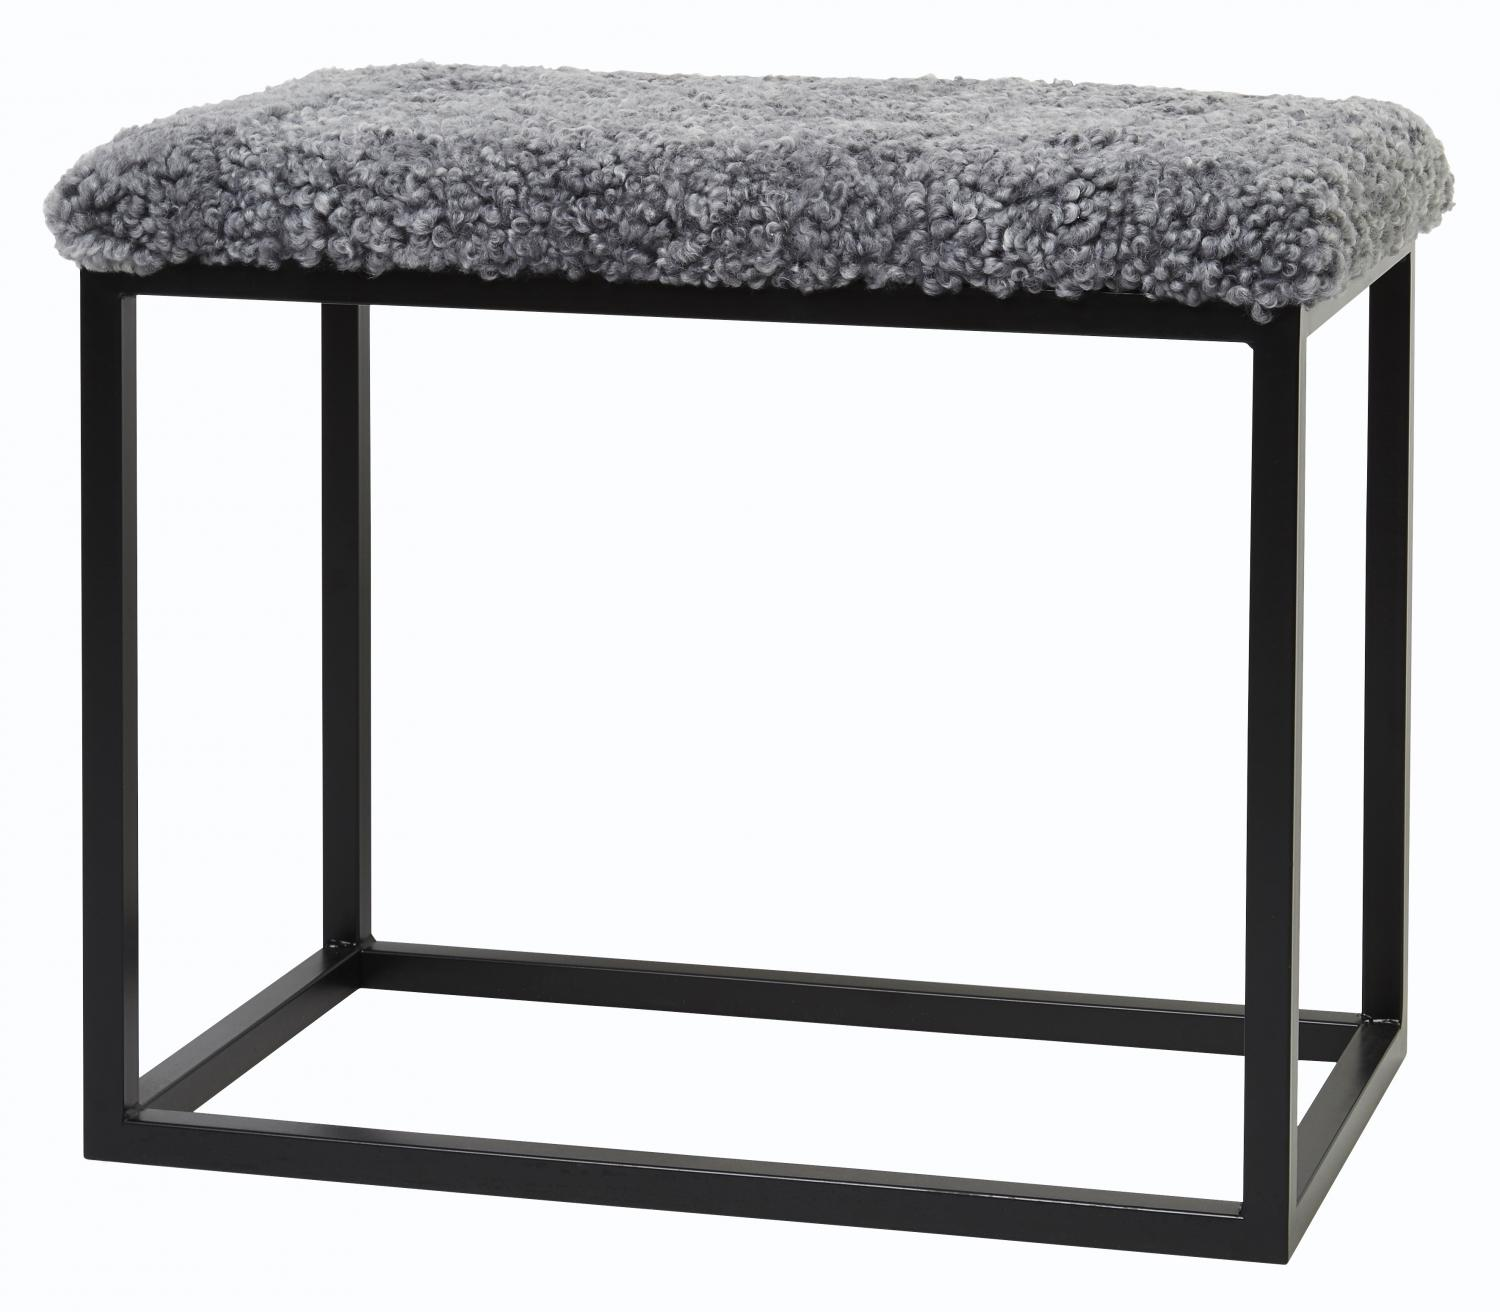 Palle M Curly Charcoal Silvergrey/Black